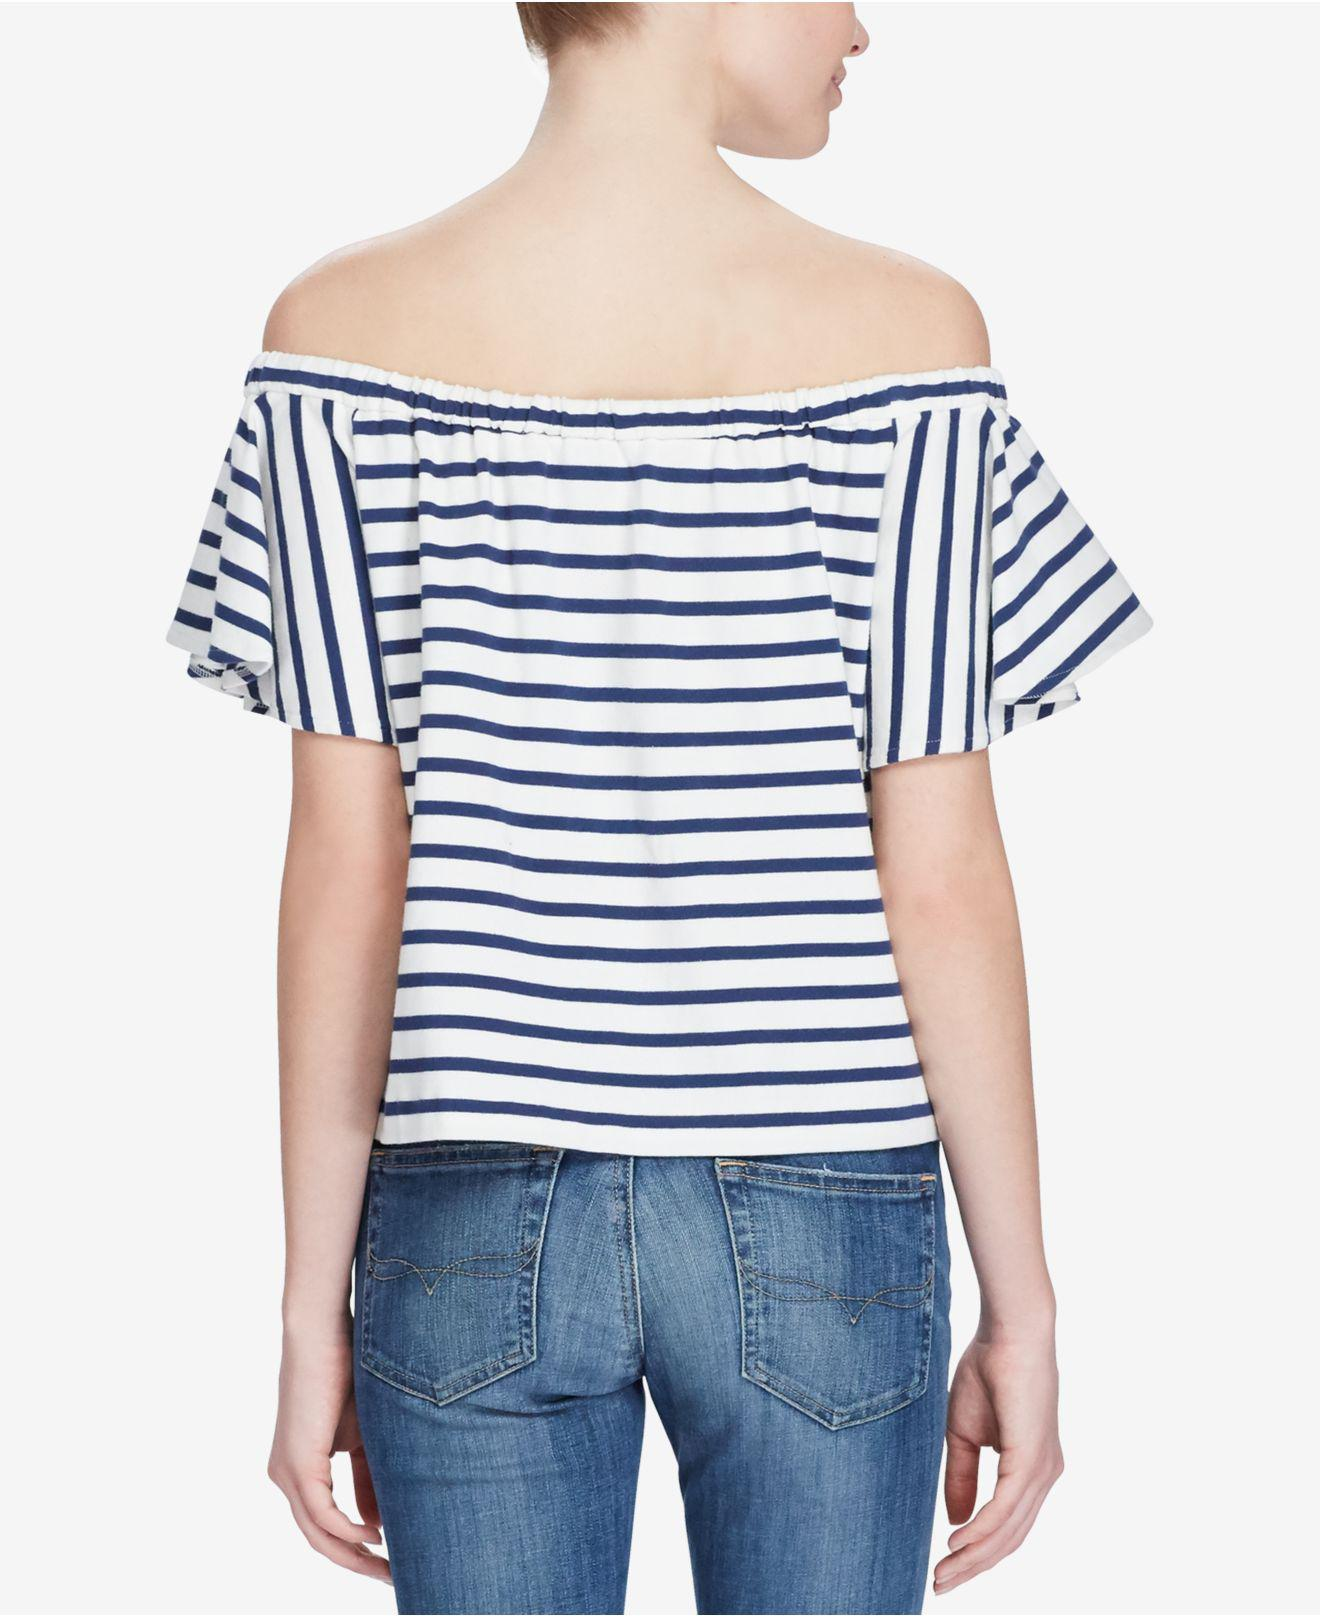 7daed4f5d8b339 Lyst - Polo Ralph Lauren Striped Off-the-shoulder Top in Blue